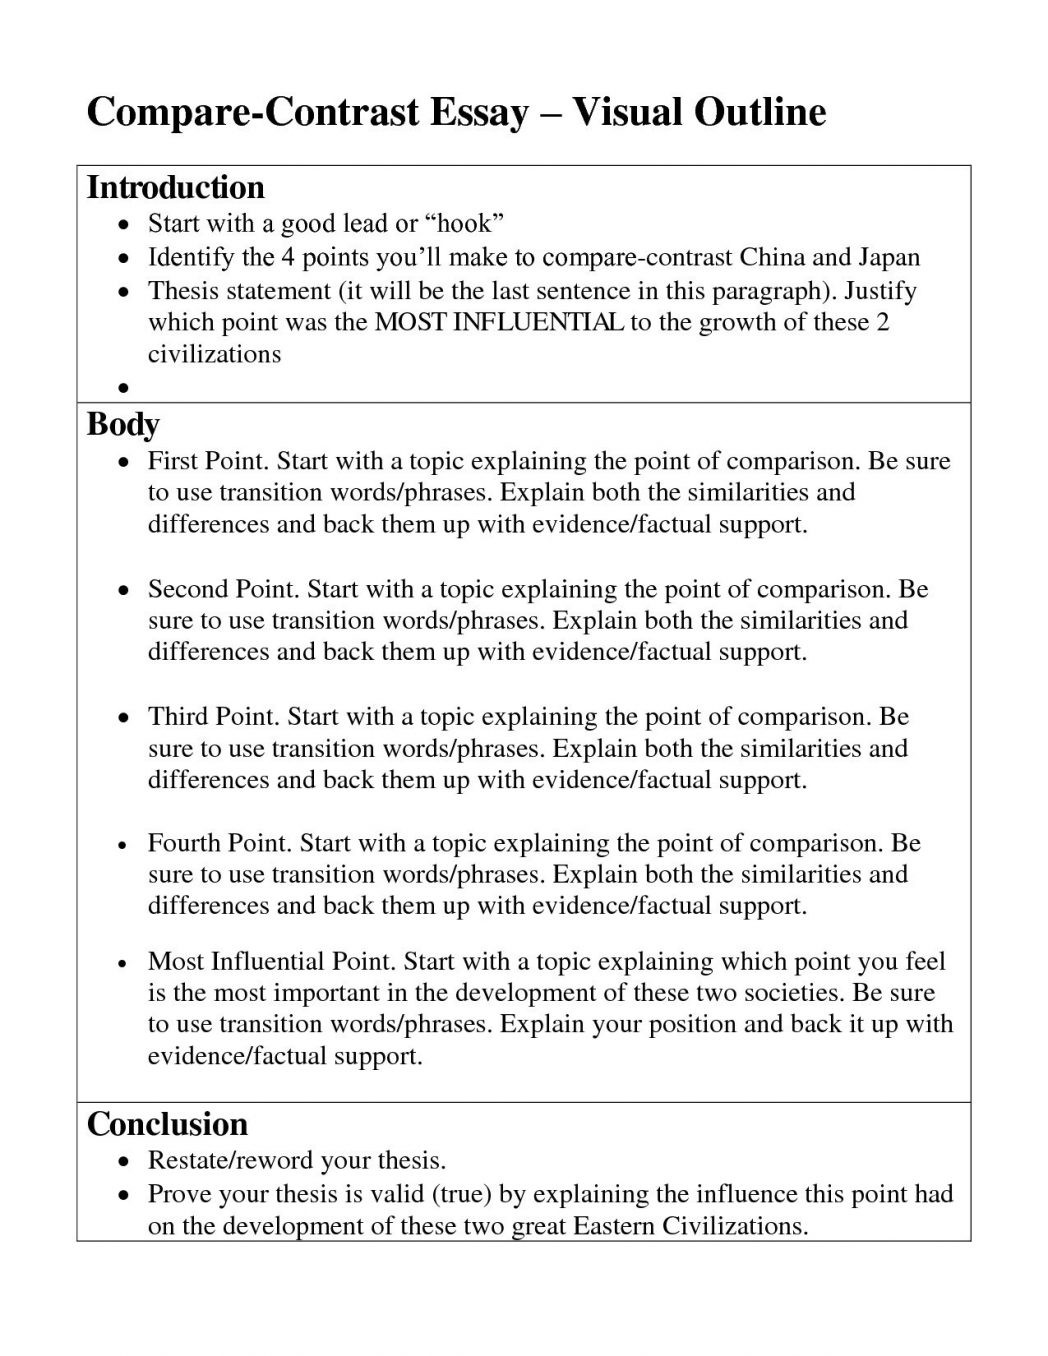 Writing Good Hooks Worksheet 003 Essay Example Writing Good Hooks Worksheet Refrence Laws